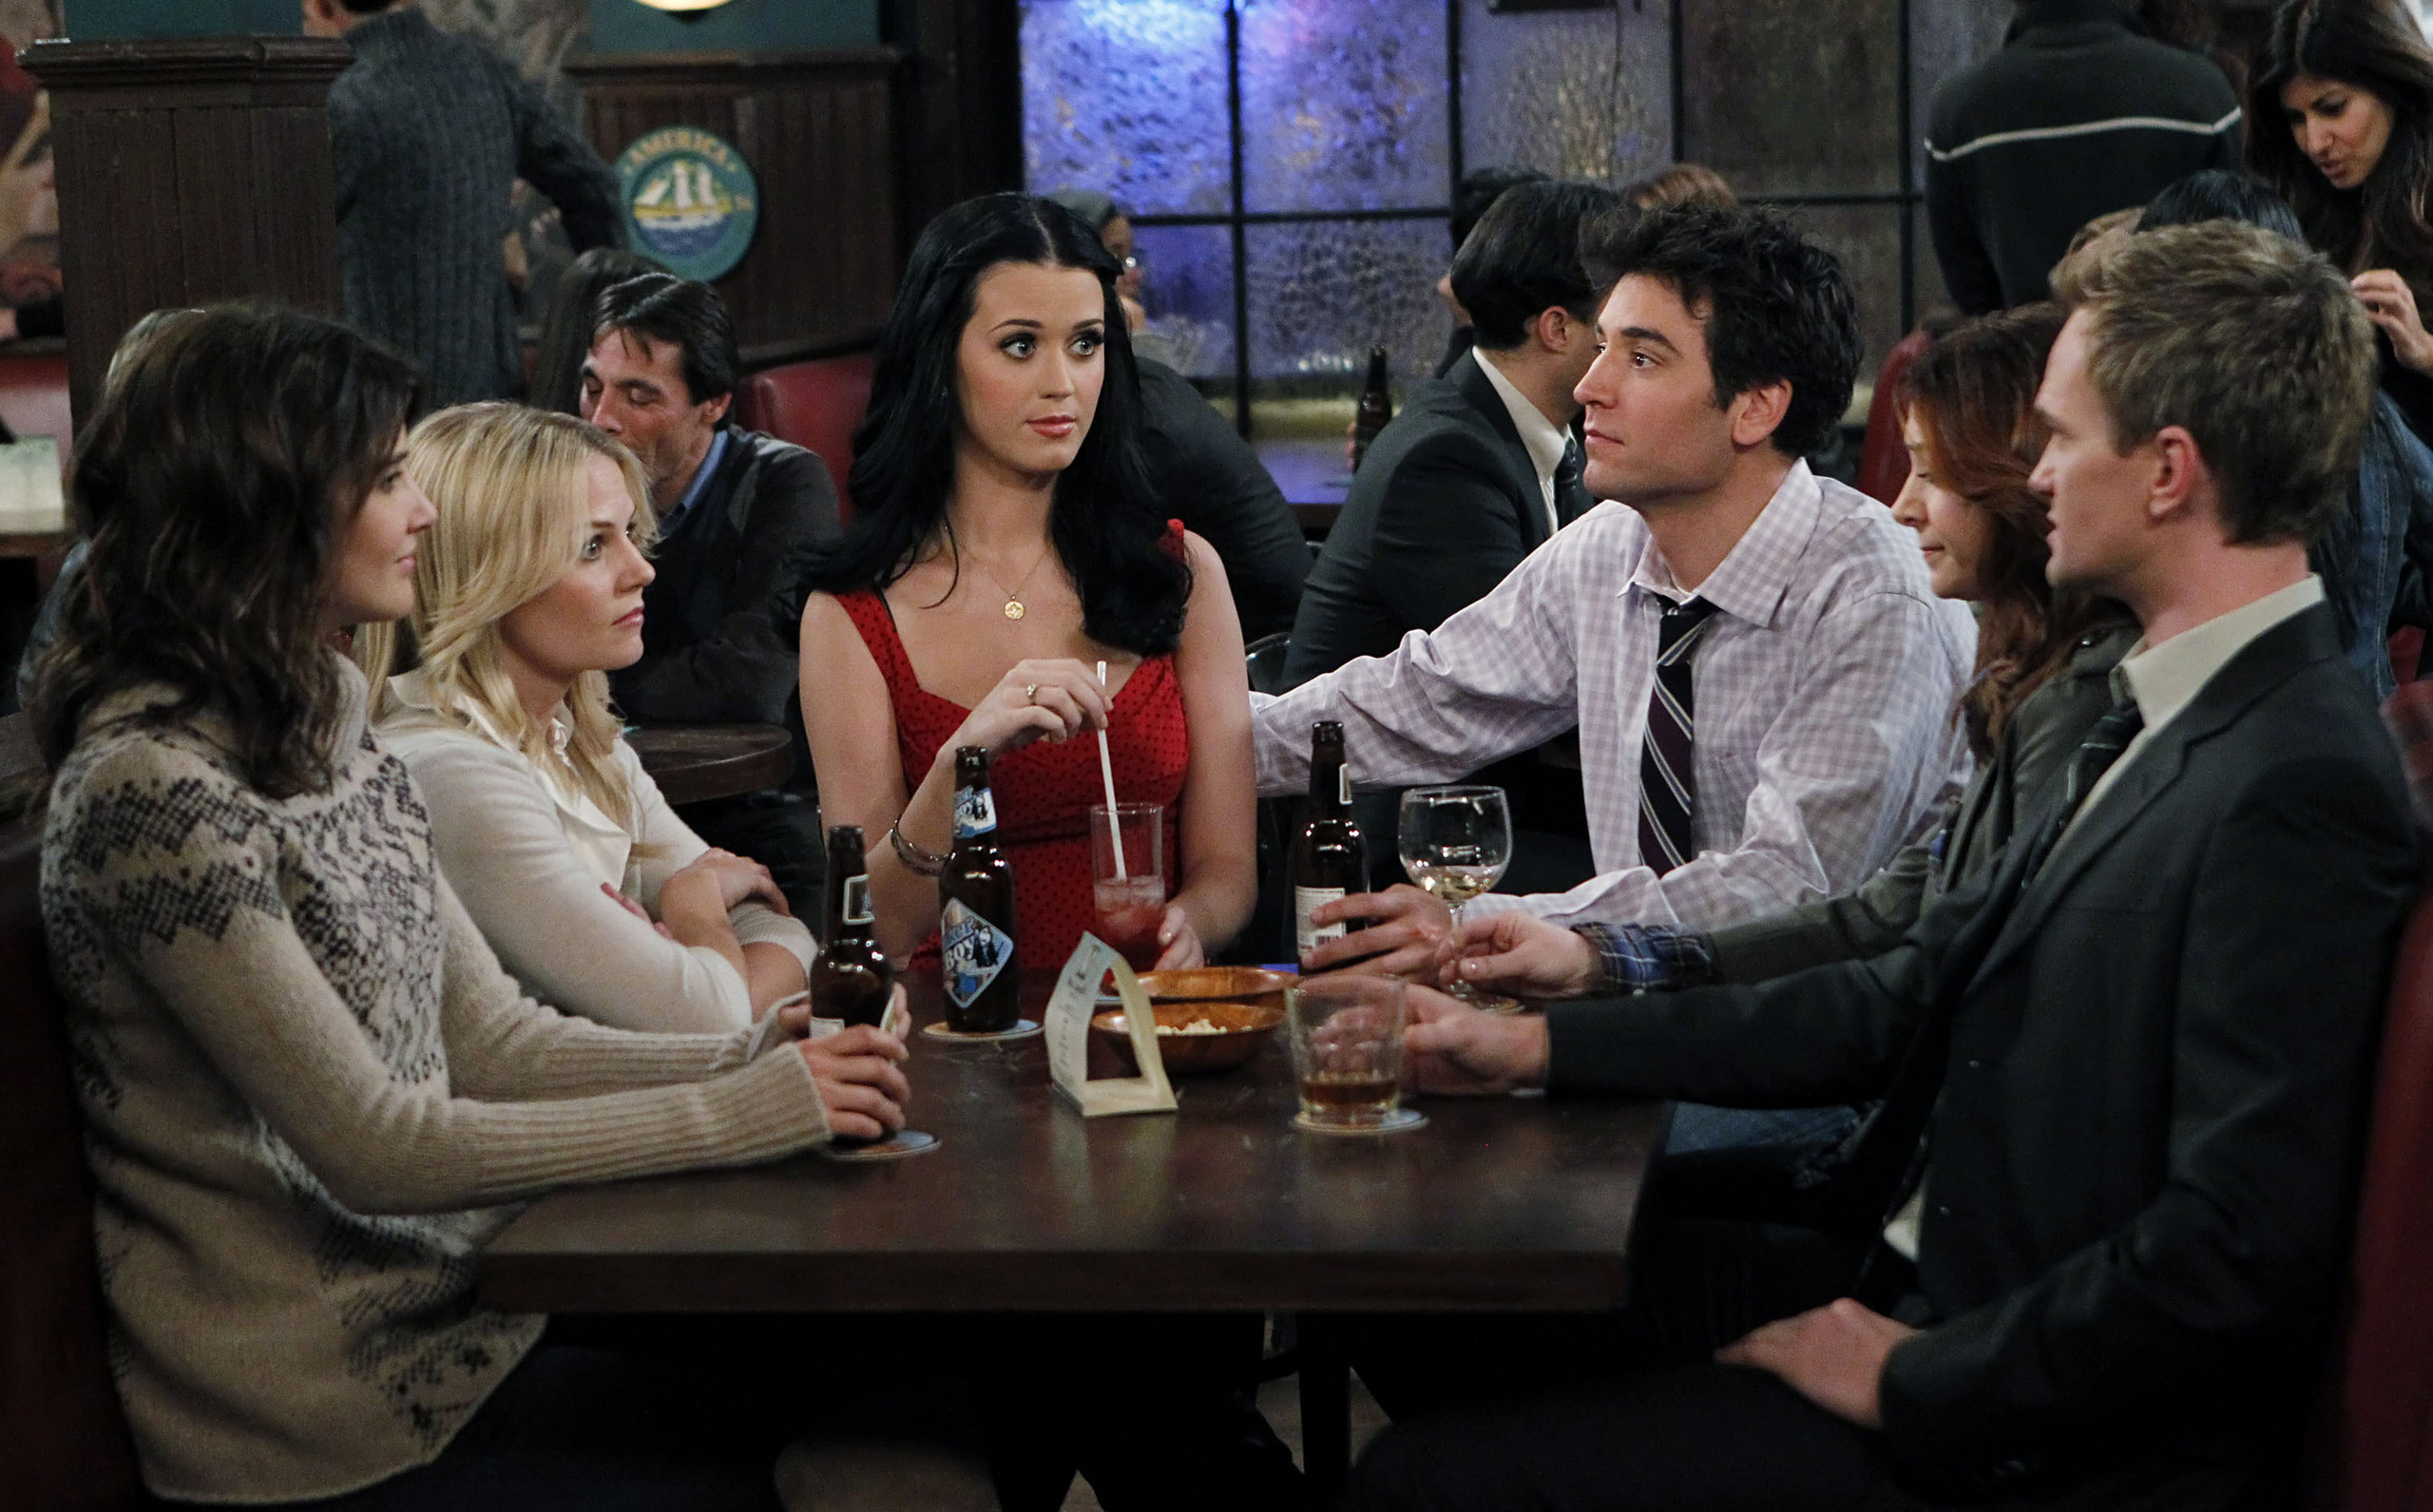 2560x1591 What drinks are served at MacLaren's Pub in How I Met Your Mother?